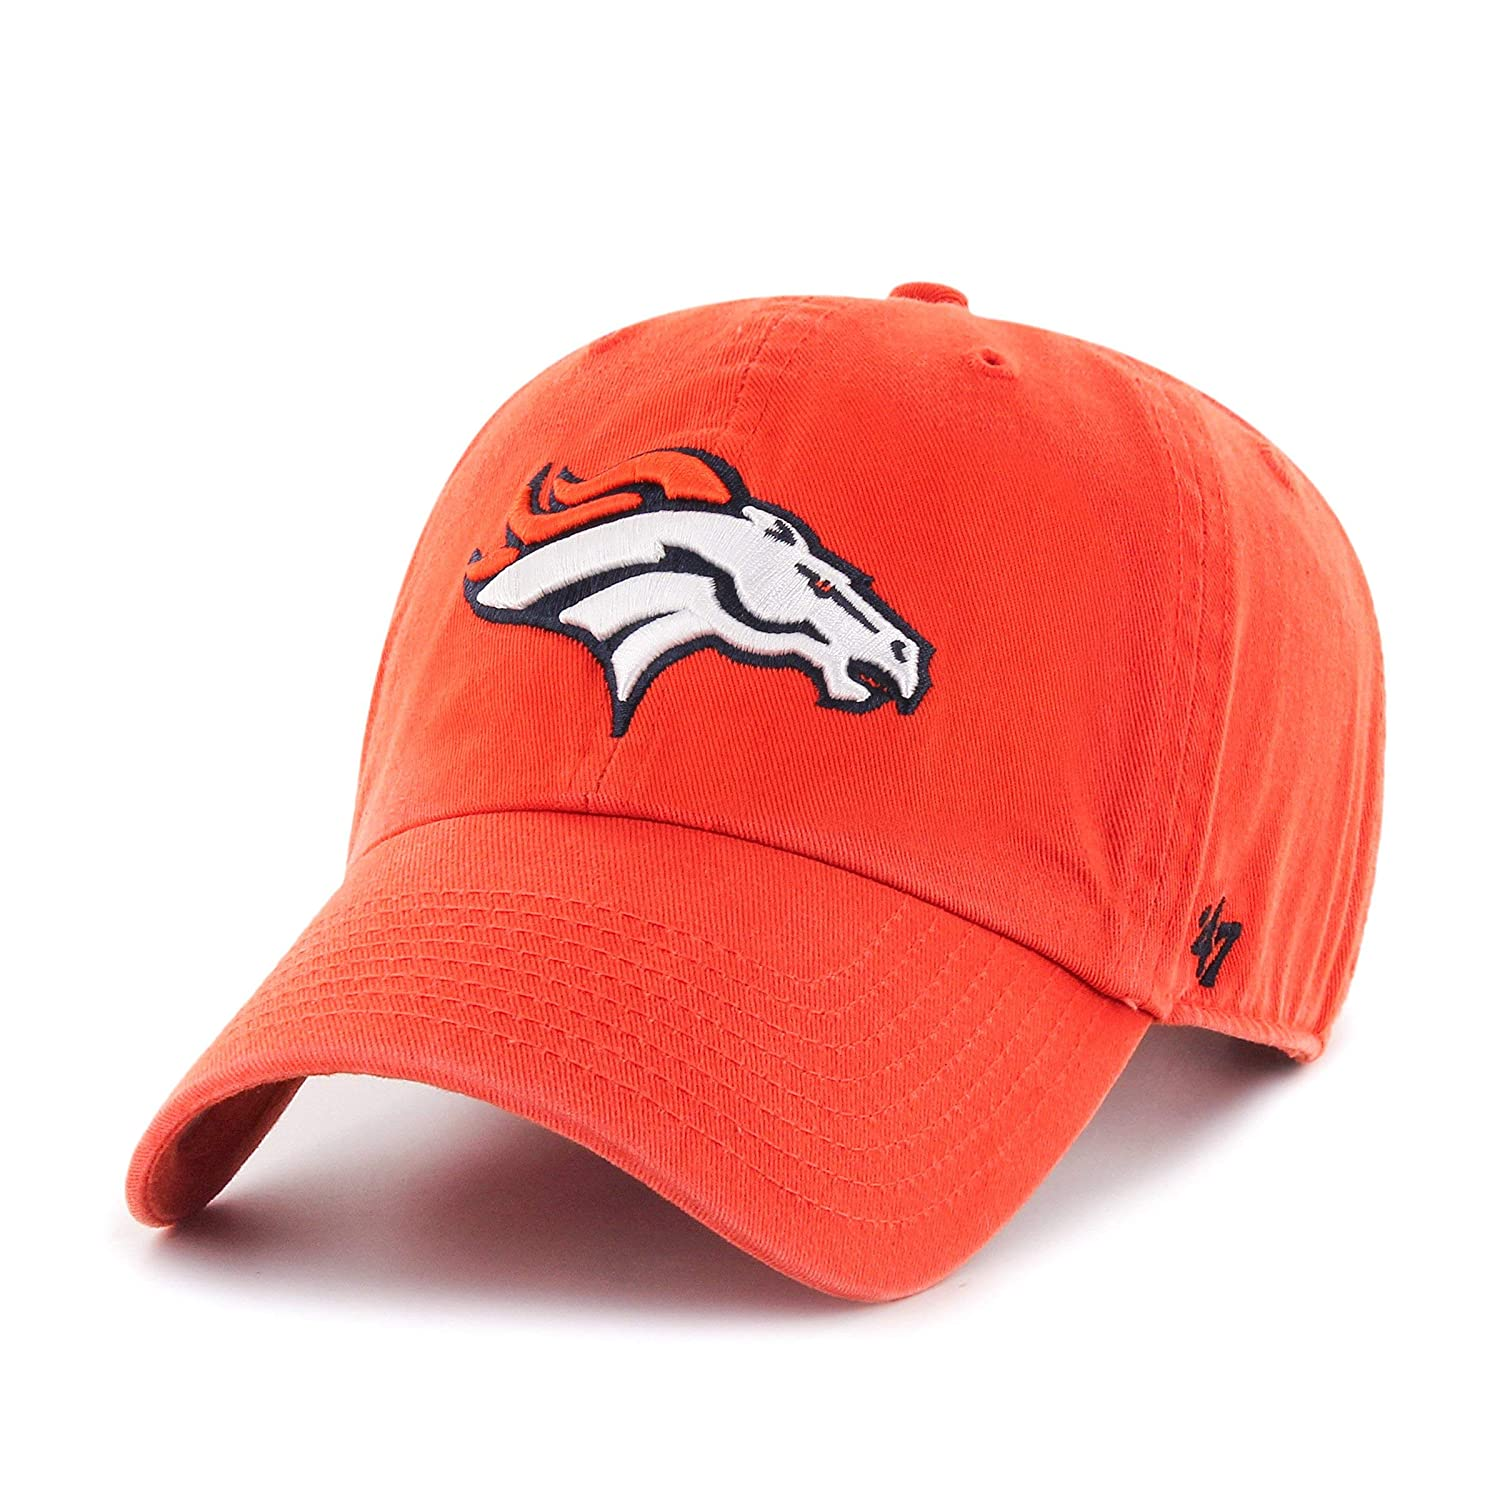 Amazon.com    47 NFL Denver Broncos Relaxed Fit Retro Embroidered Cotton  Twill Cap   Sports   Outdoors 4a444ce01